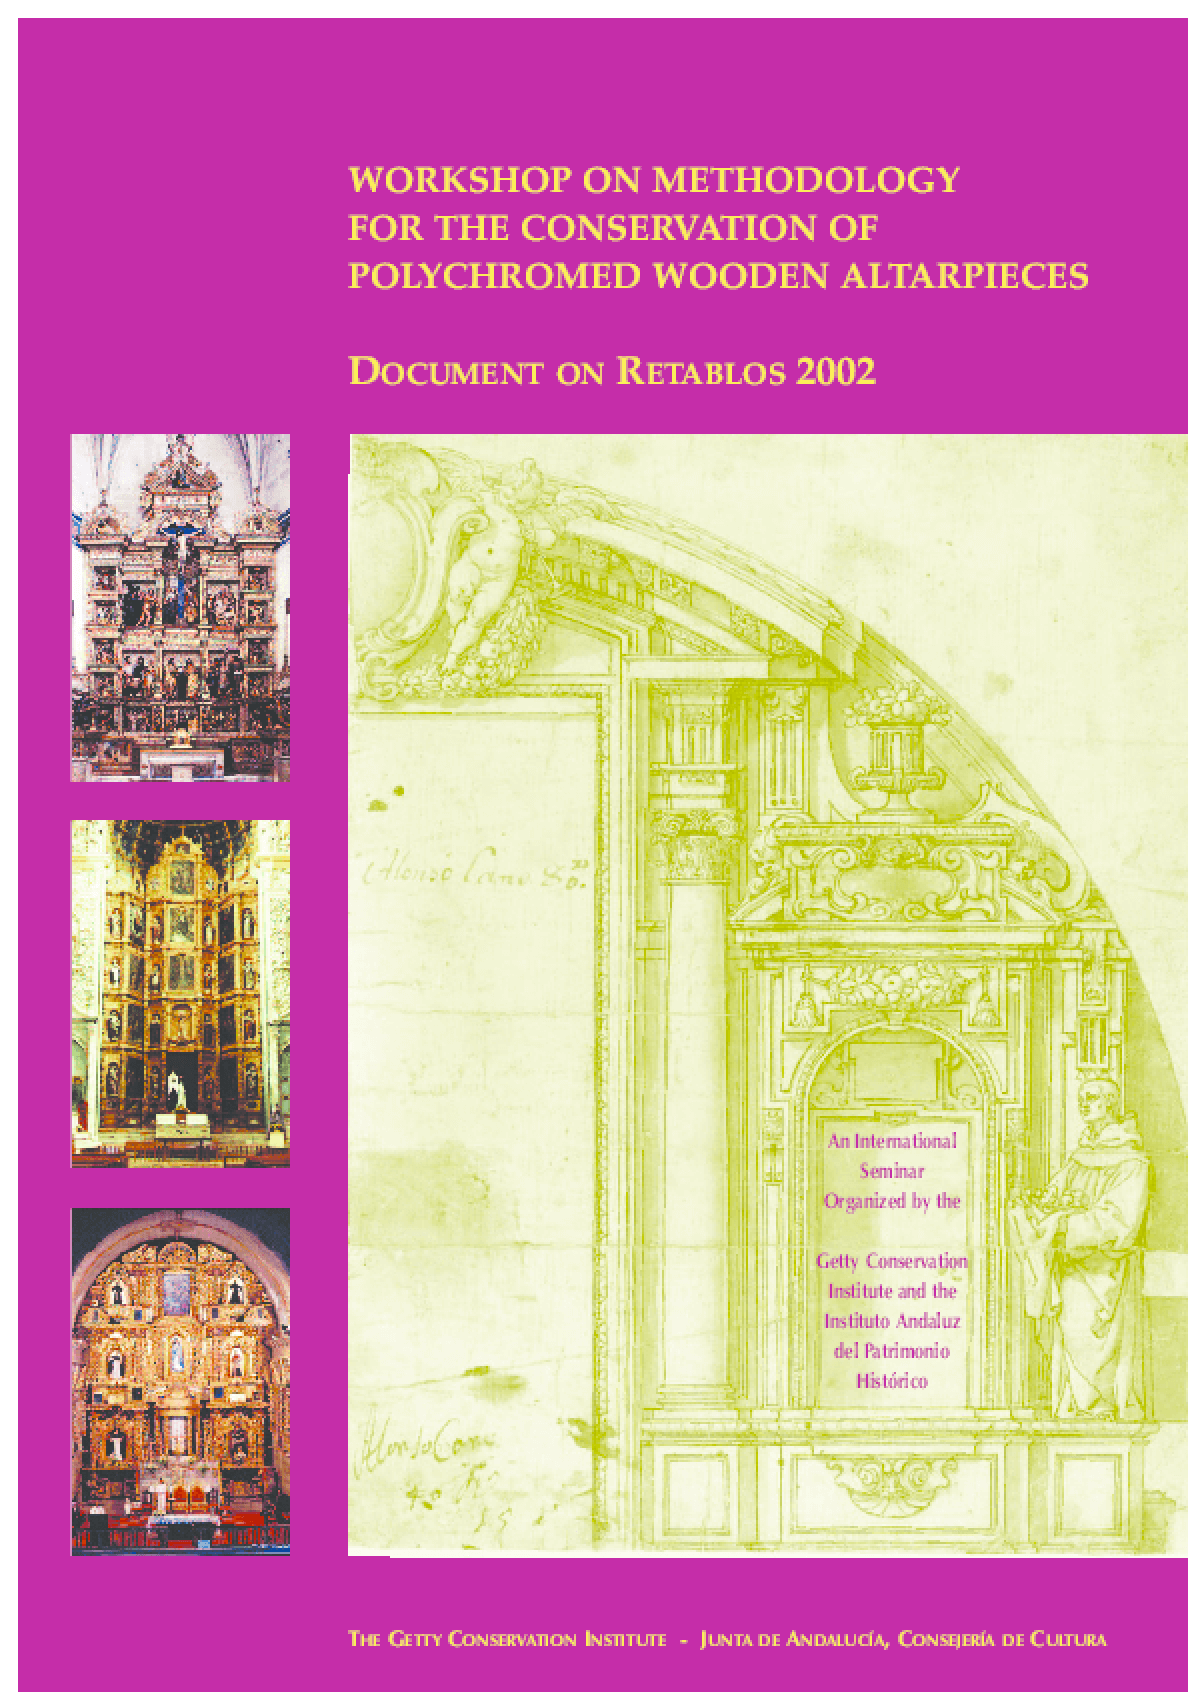 Workshop on Methodology for the Conservation of Polychromed Wooden Altarpieces